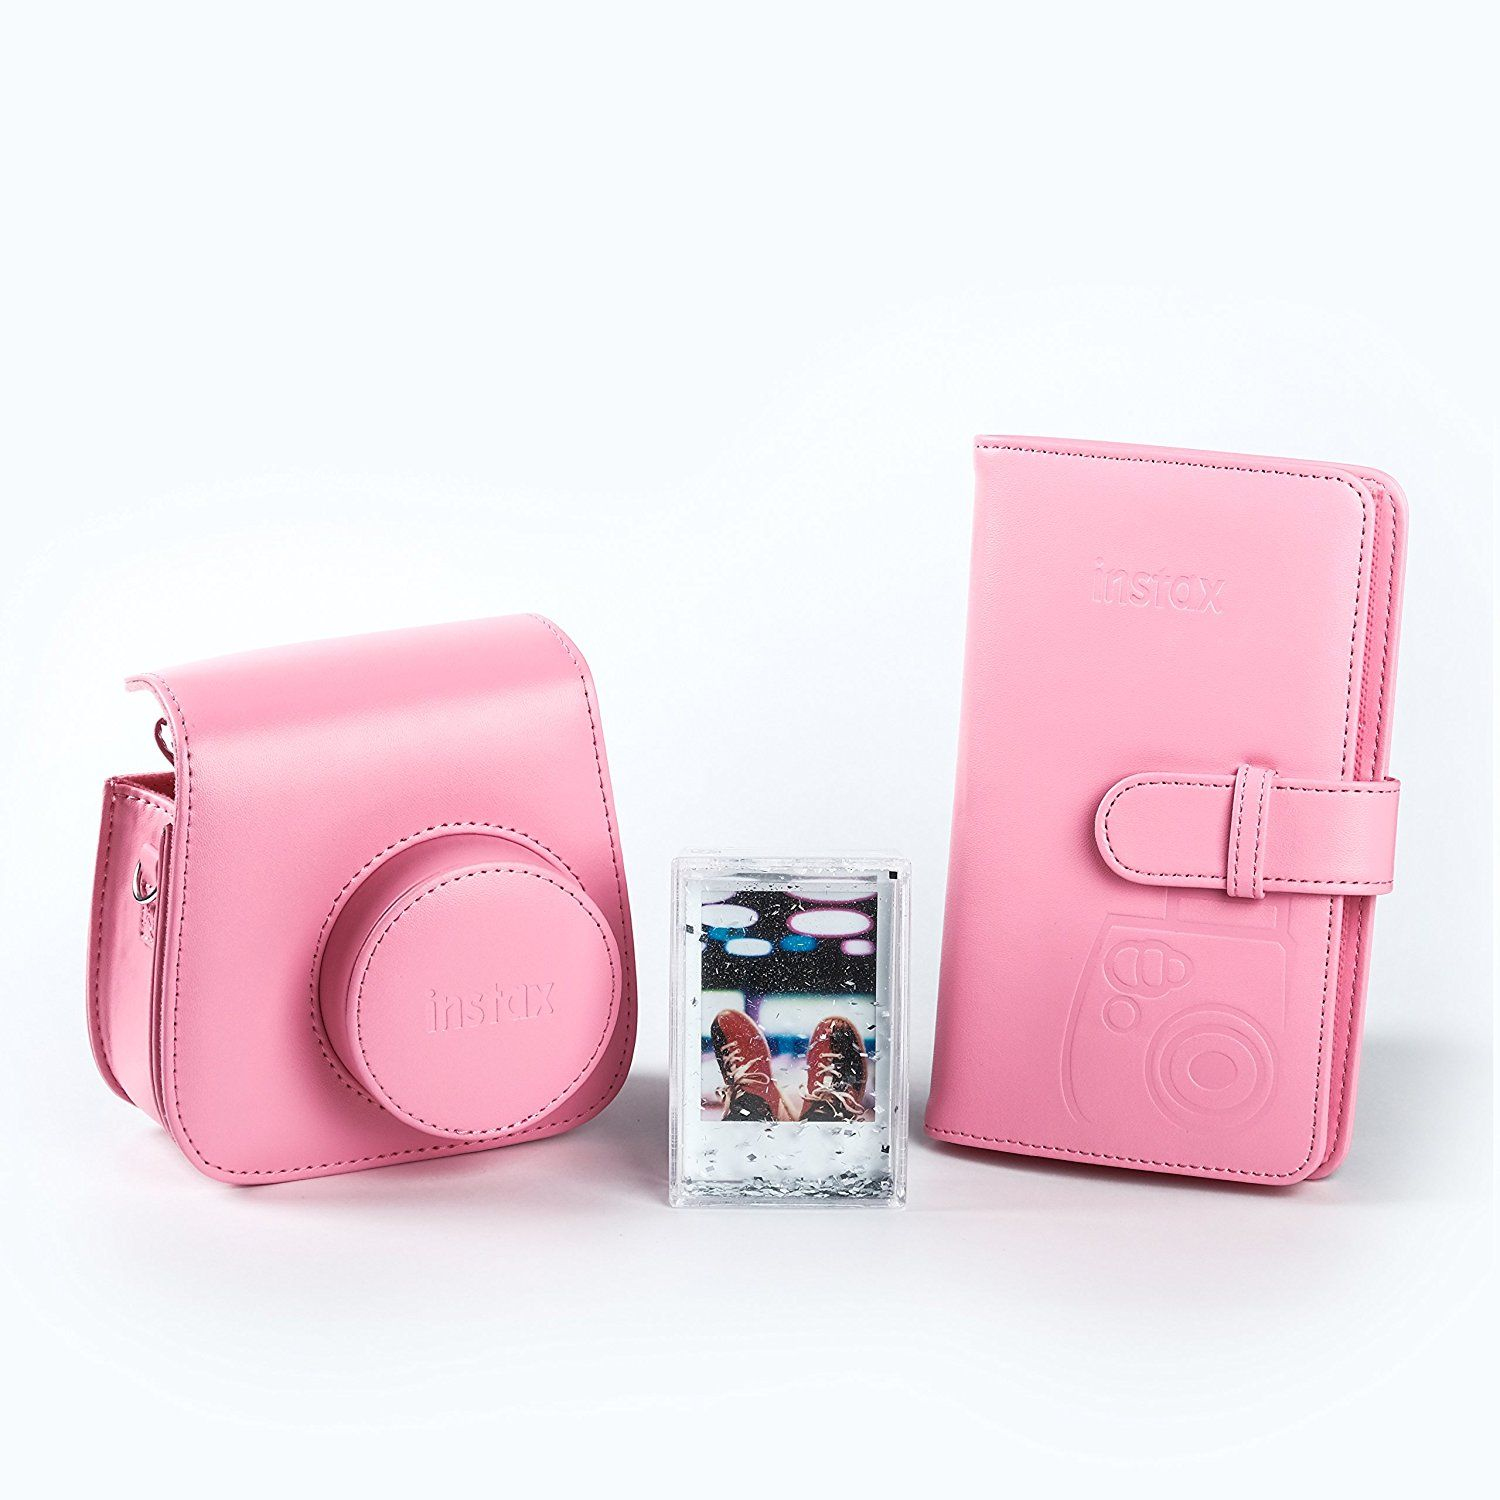 Fujifilm 70100138066 camera case Cover Pink